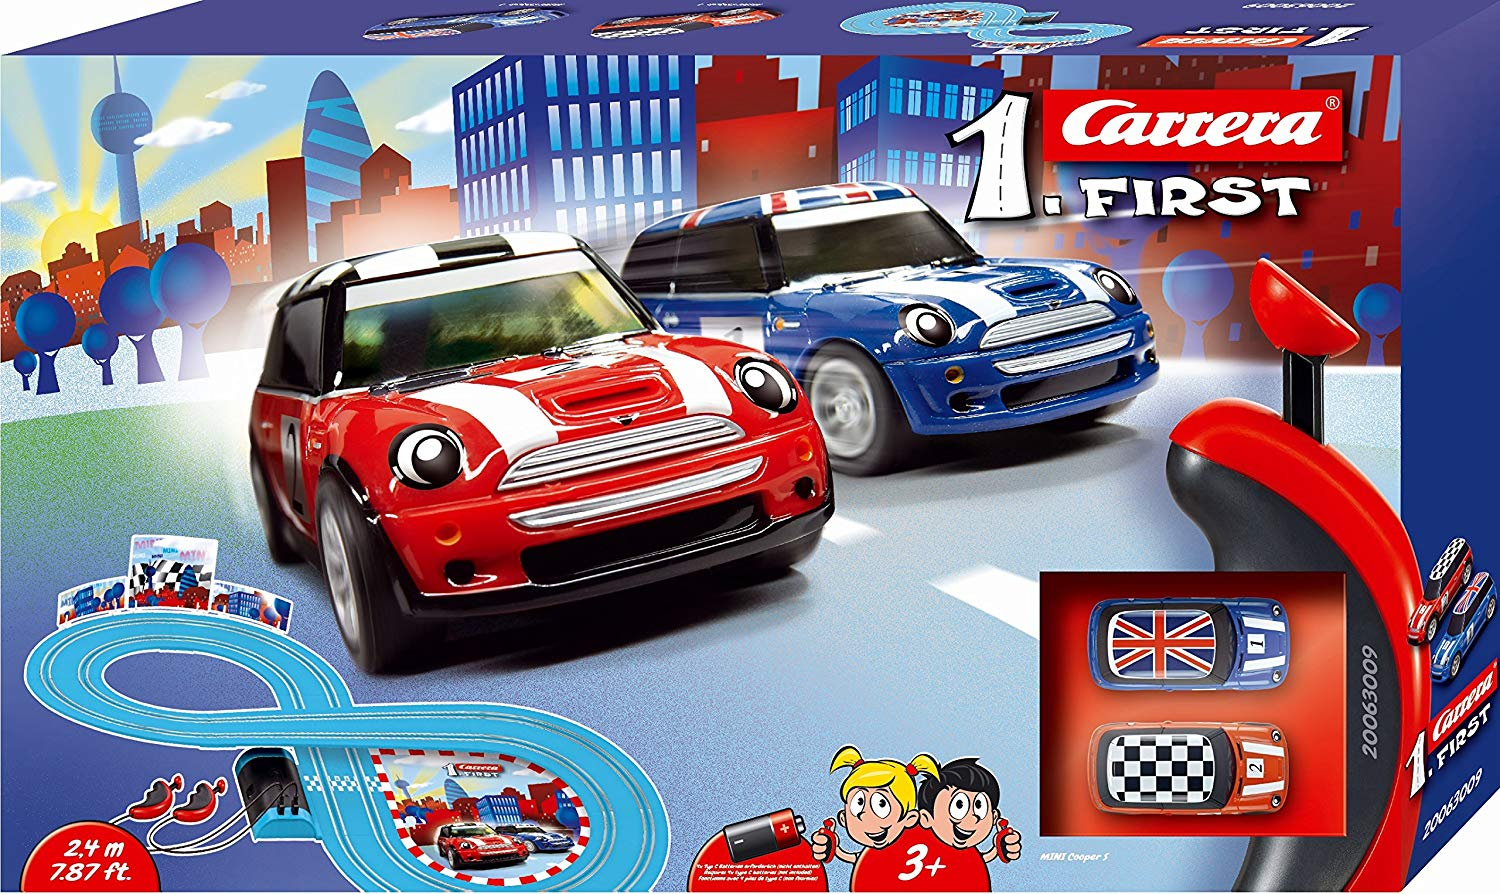 Pista/Circuito Carrera First MINI Cooper 2.40 Metros